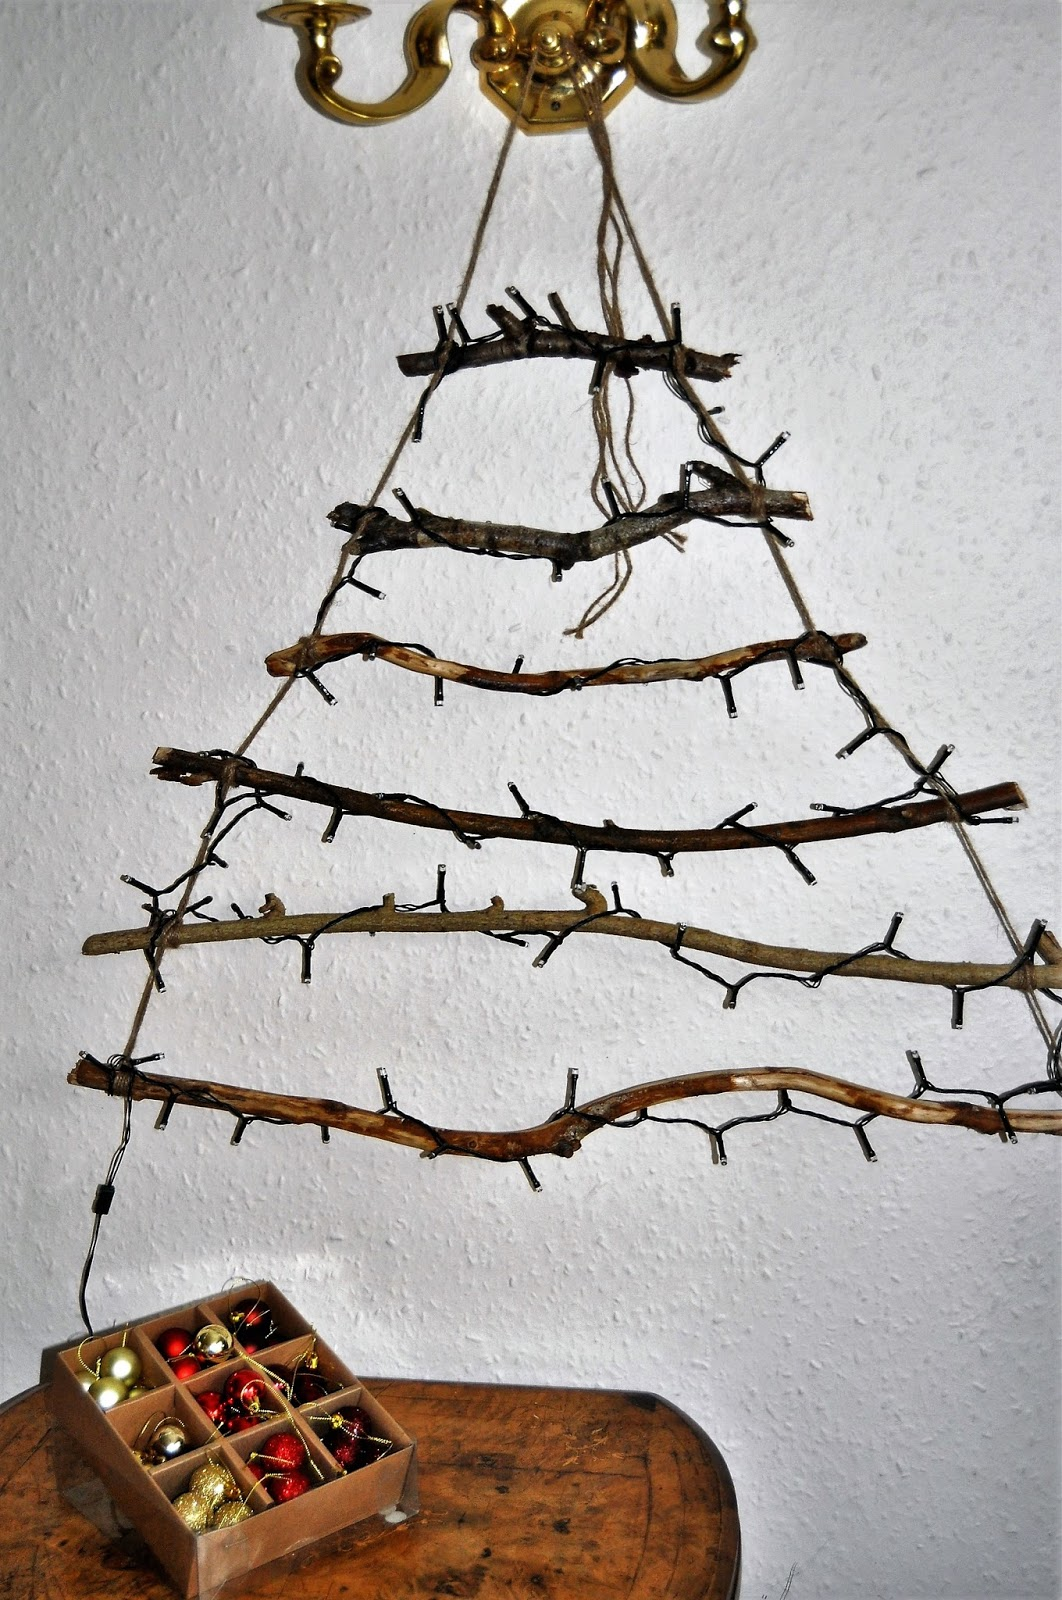 Getting crafty for Christmas - Create a Christmas Tree Wall Hanging, photo by modernbricabrac